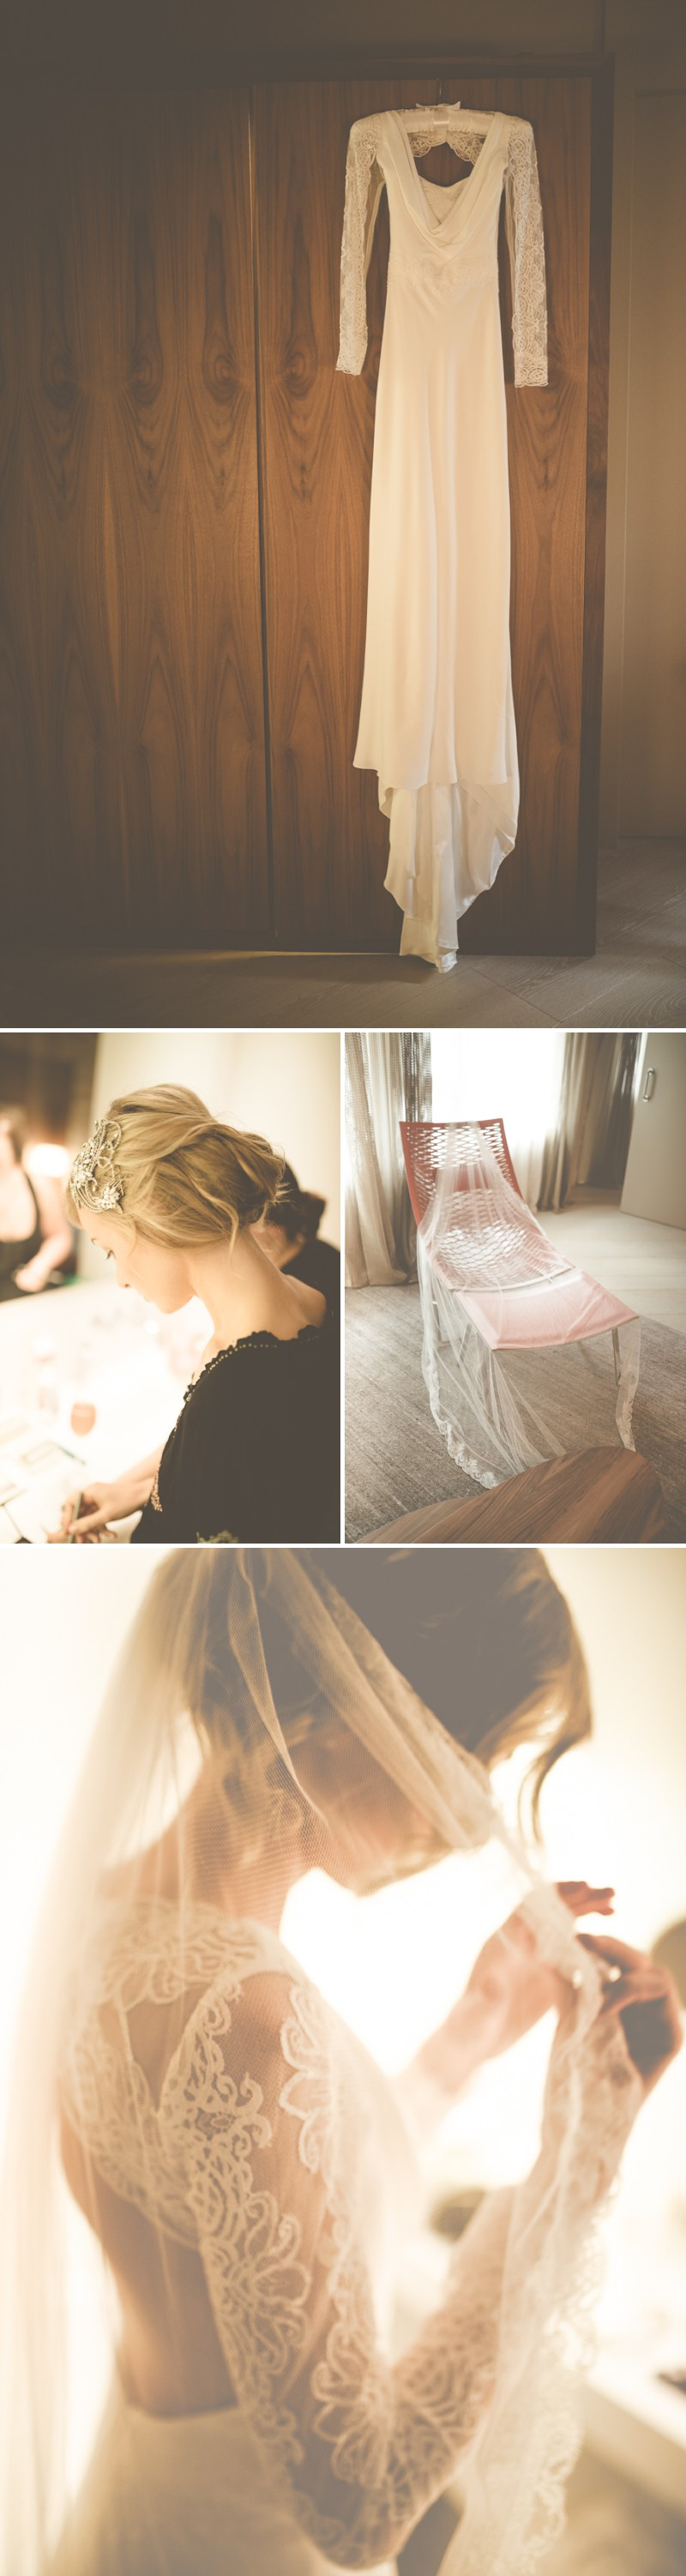 An Intimate And Luxurious Destination Wedding In Barcelona With A Suzanne Neville Regency Dress And A Jenny Packham Valentine Headpiece By Modern Vintage Weddings Photography. 0001 Daiquiris And Flamenco In Beautiful Barcelona.